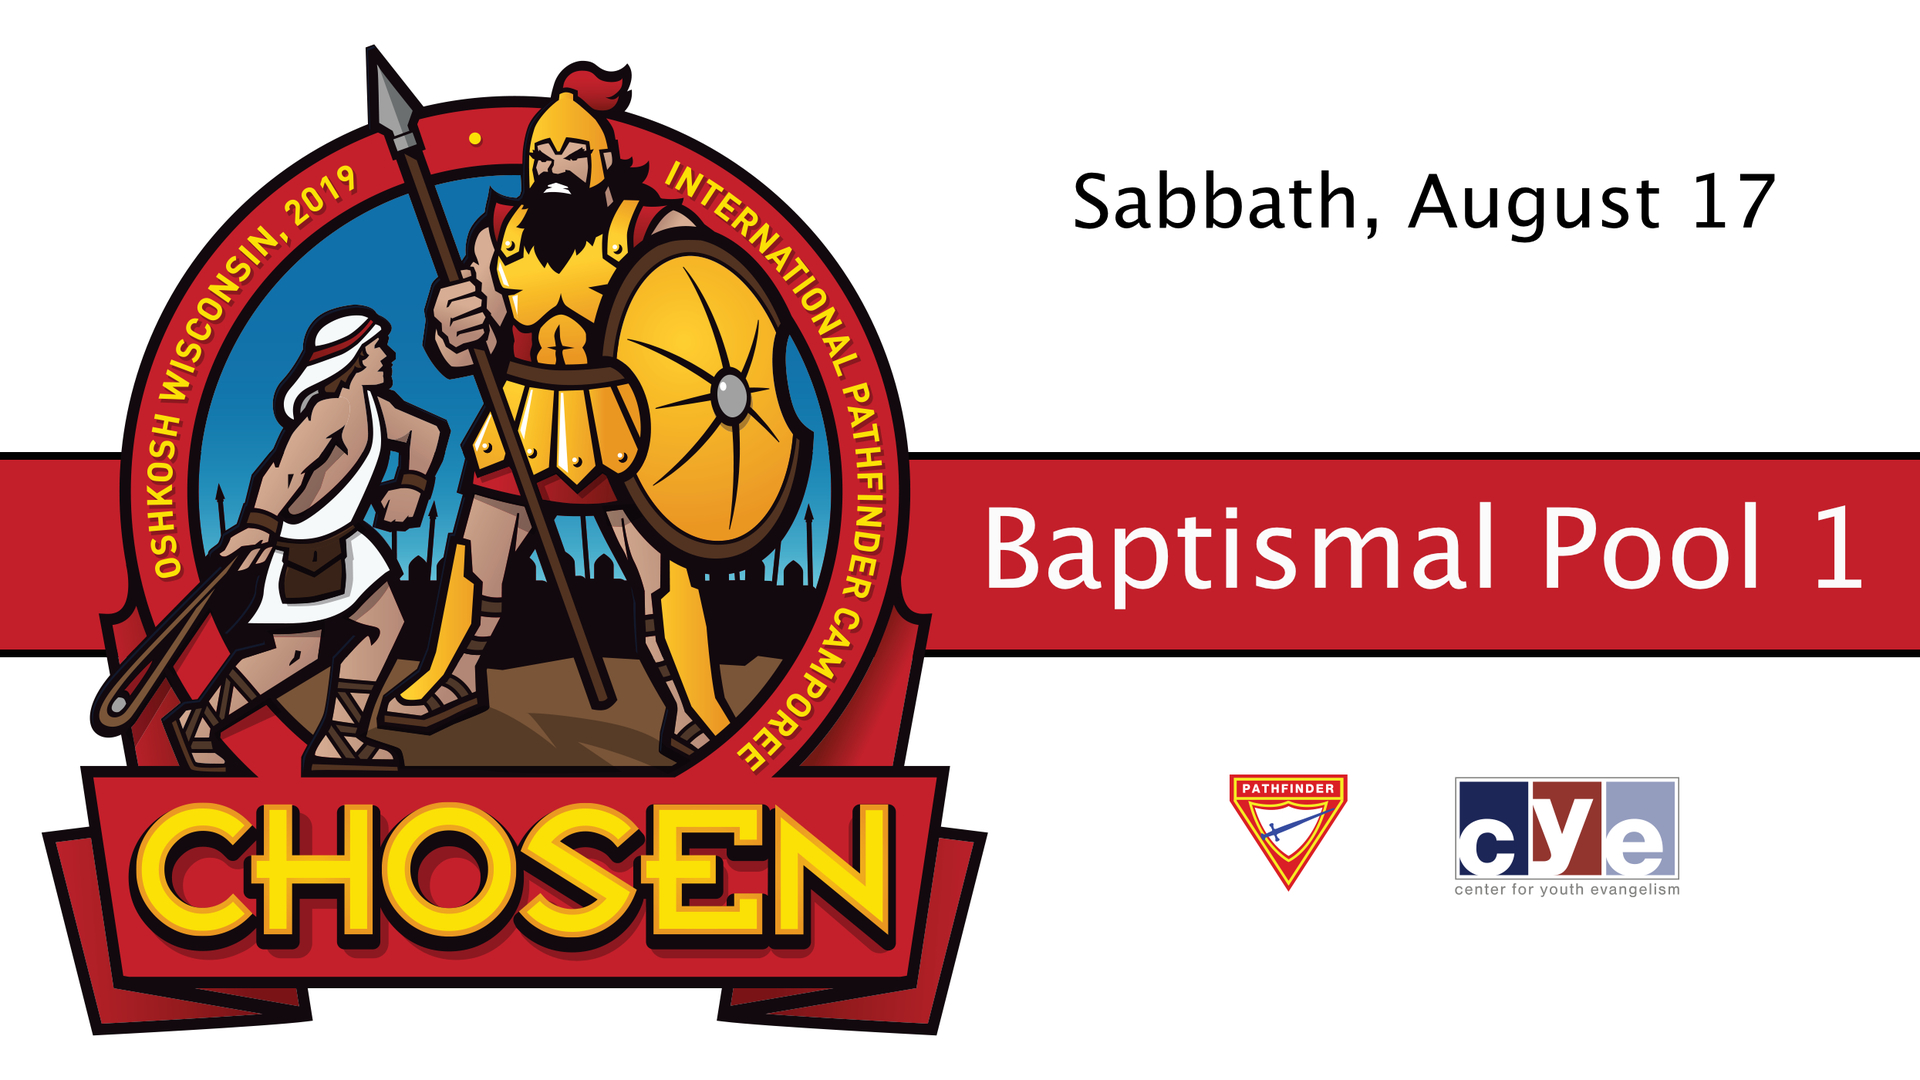 Sabbath's Late Morning and Afternoon Baptisms: Pool 1